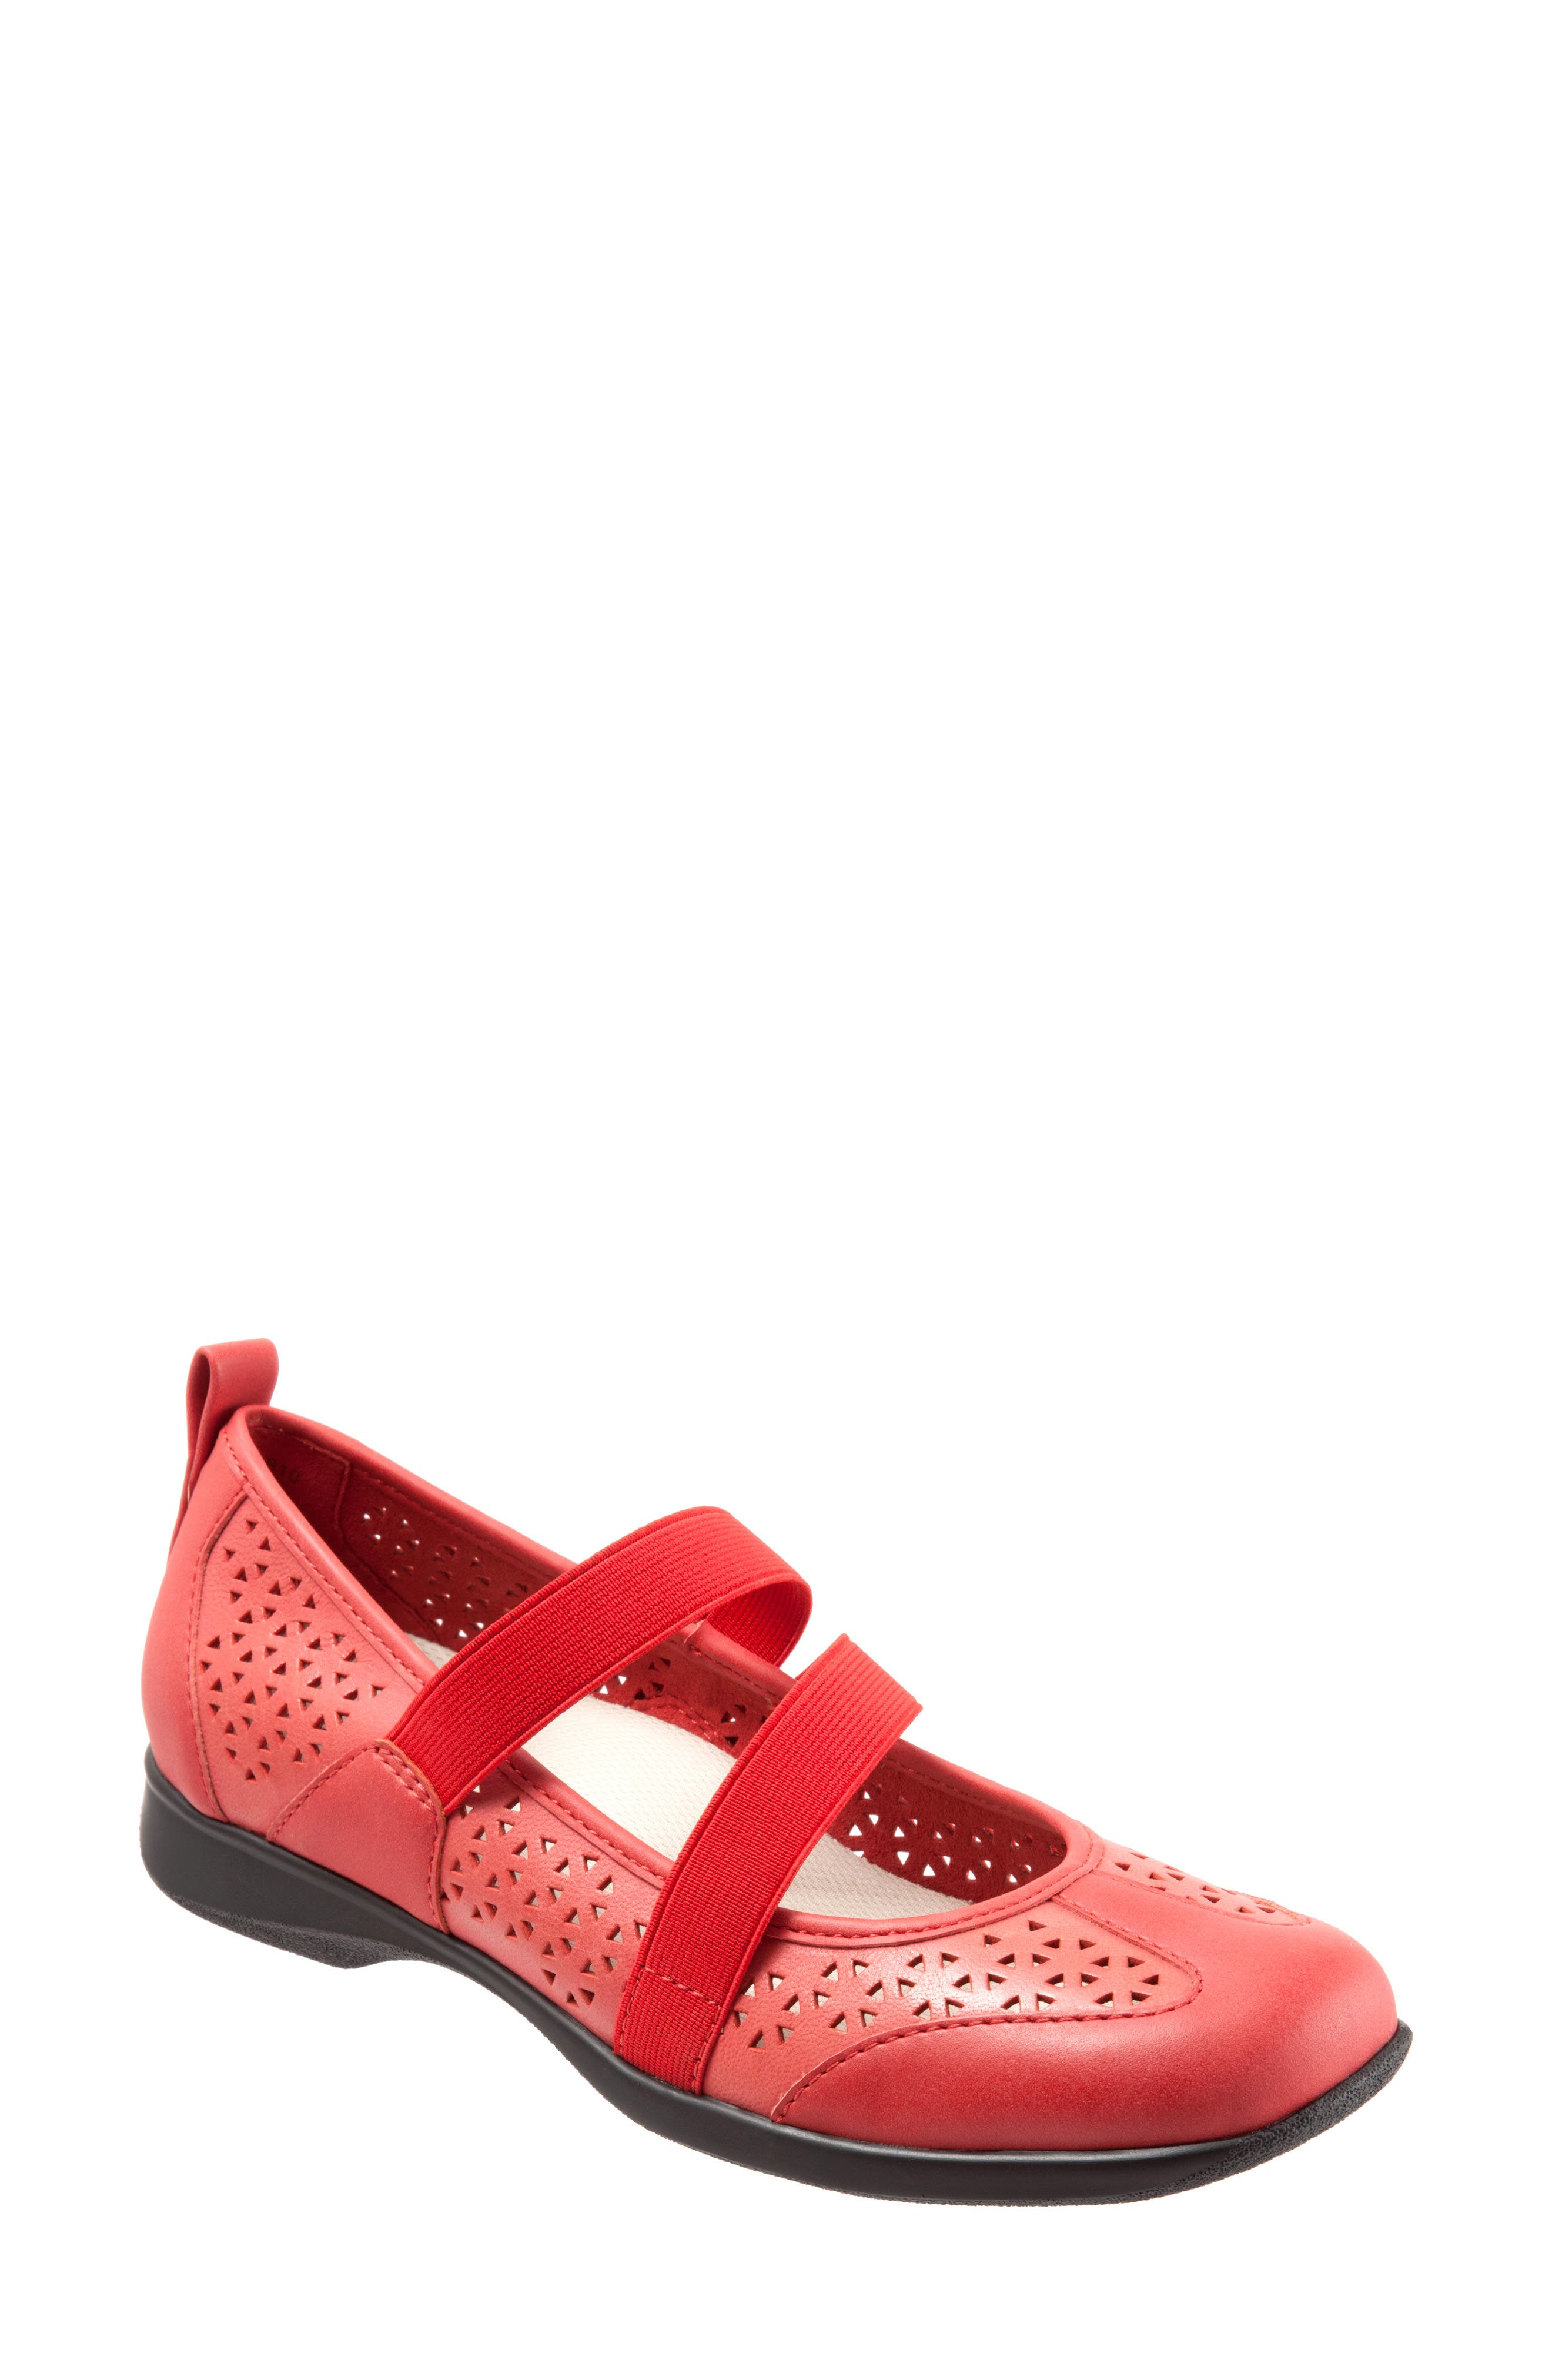 Josie Flat,                             Main thumbnail 1, color,                             Red Leather